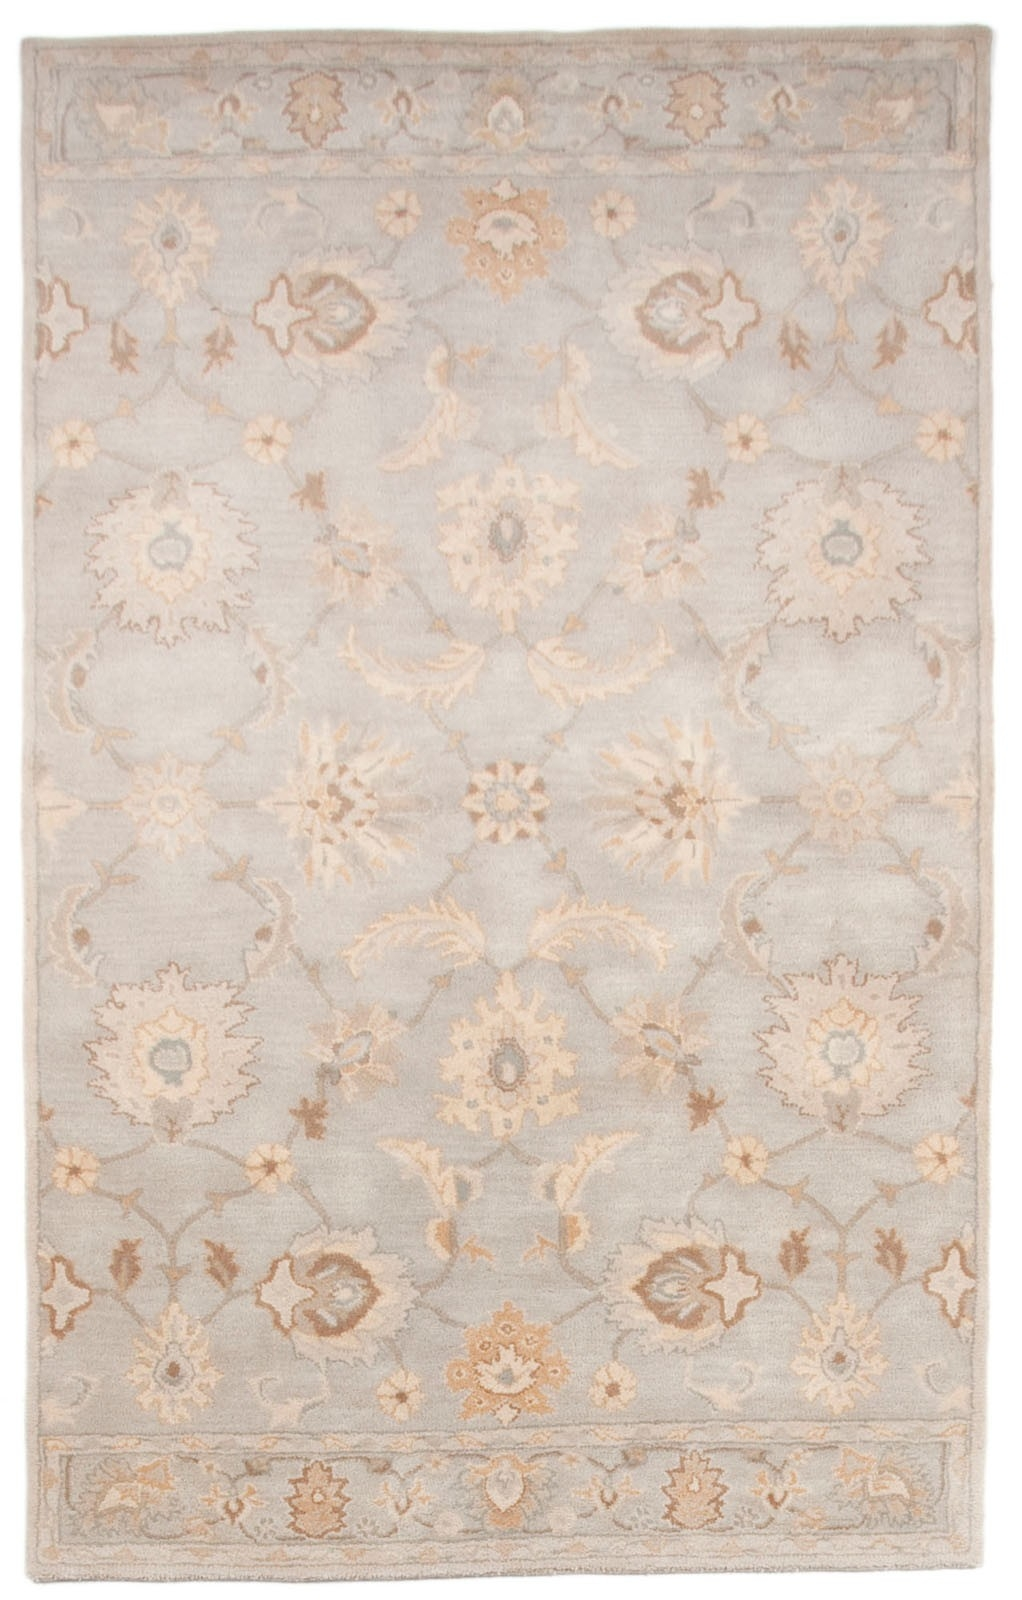 Modern Wool Area Rugs Roselawnlutheran Within 5×8 Wool Area Rugs (View 6 of 15)